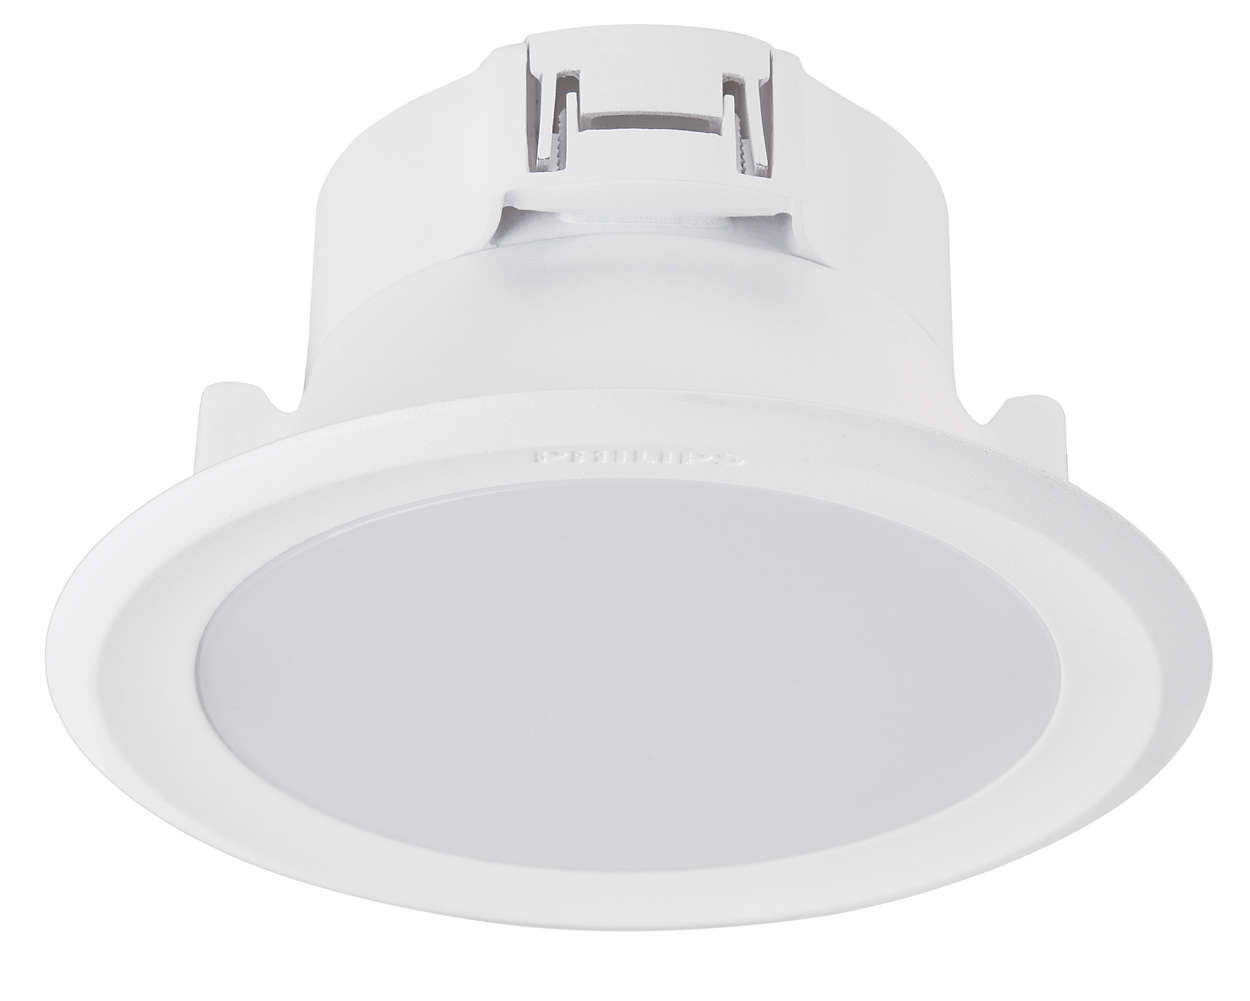 Recessed spot light 440832766 philips recessed spot light mozeypictures Gallery